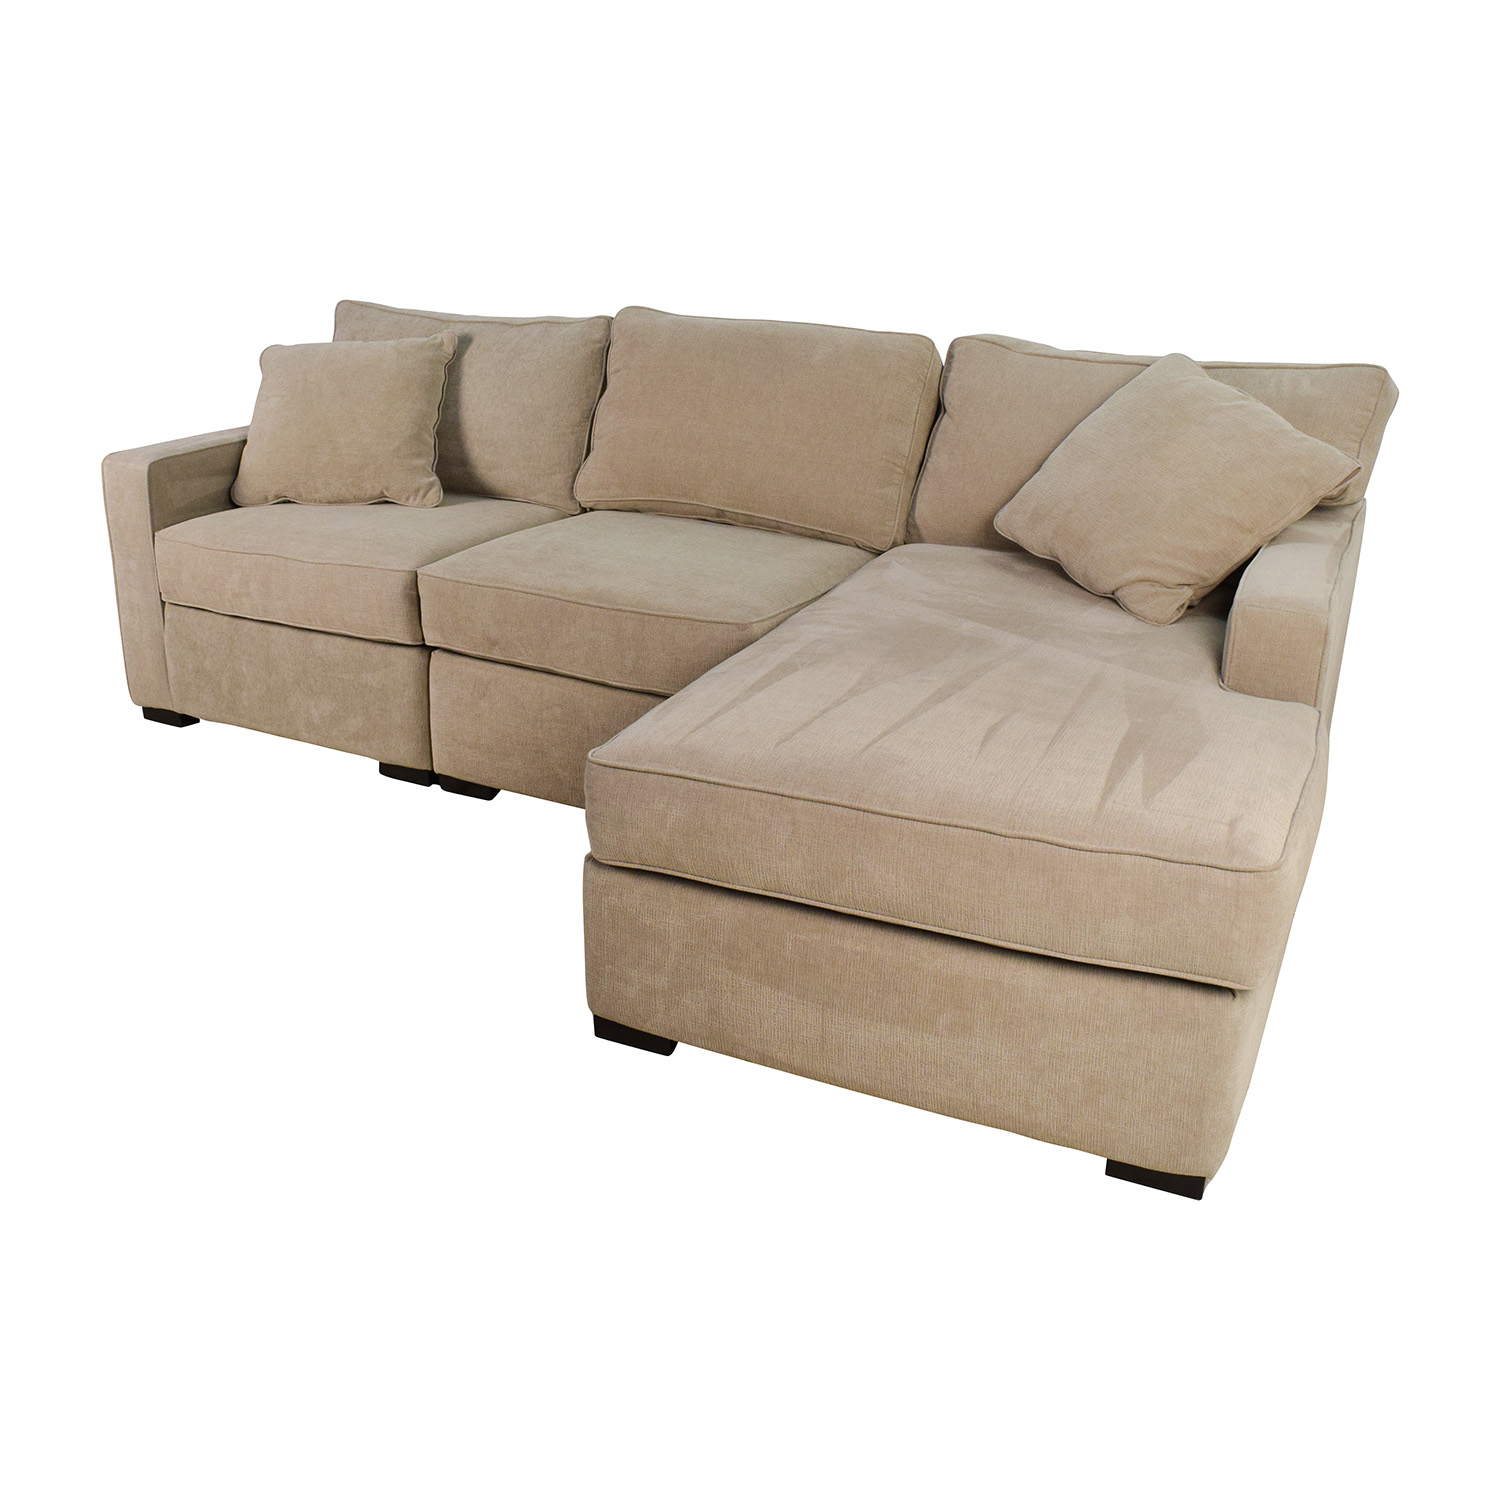 Fabric Sectional Sofas With Chaise 37% Off - Macy's Radley 3-piece Fabric Chaise Sectional